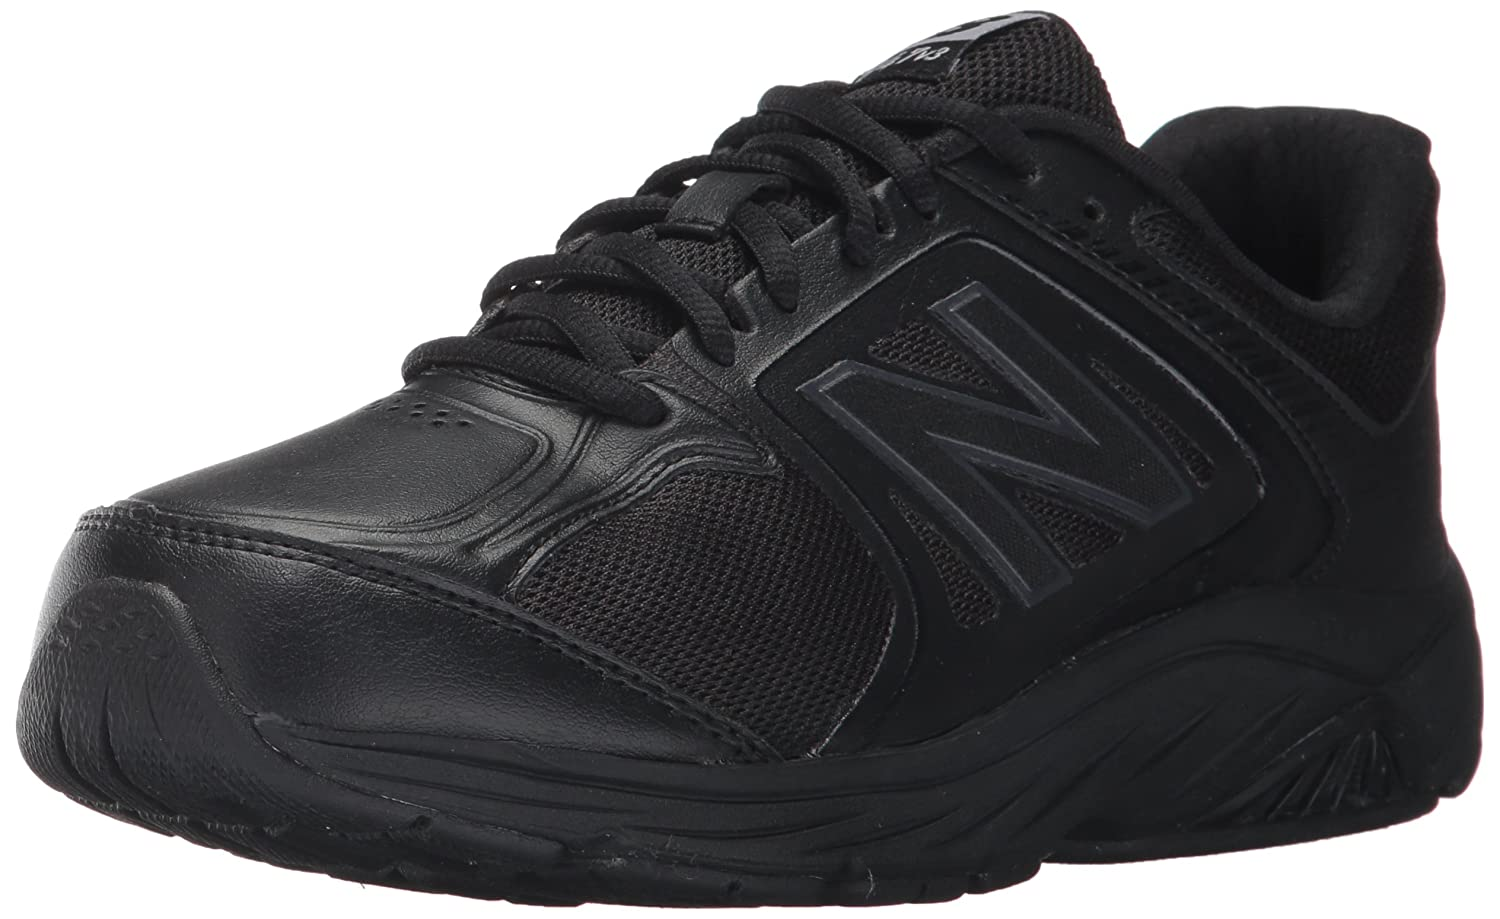 New Balance Women's 847v3 Walking Shoe B01NB9BNTS 8.5 2E US|Black/Black